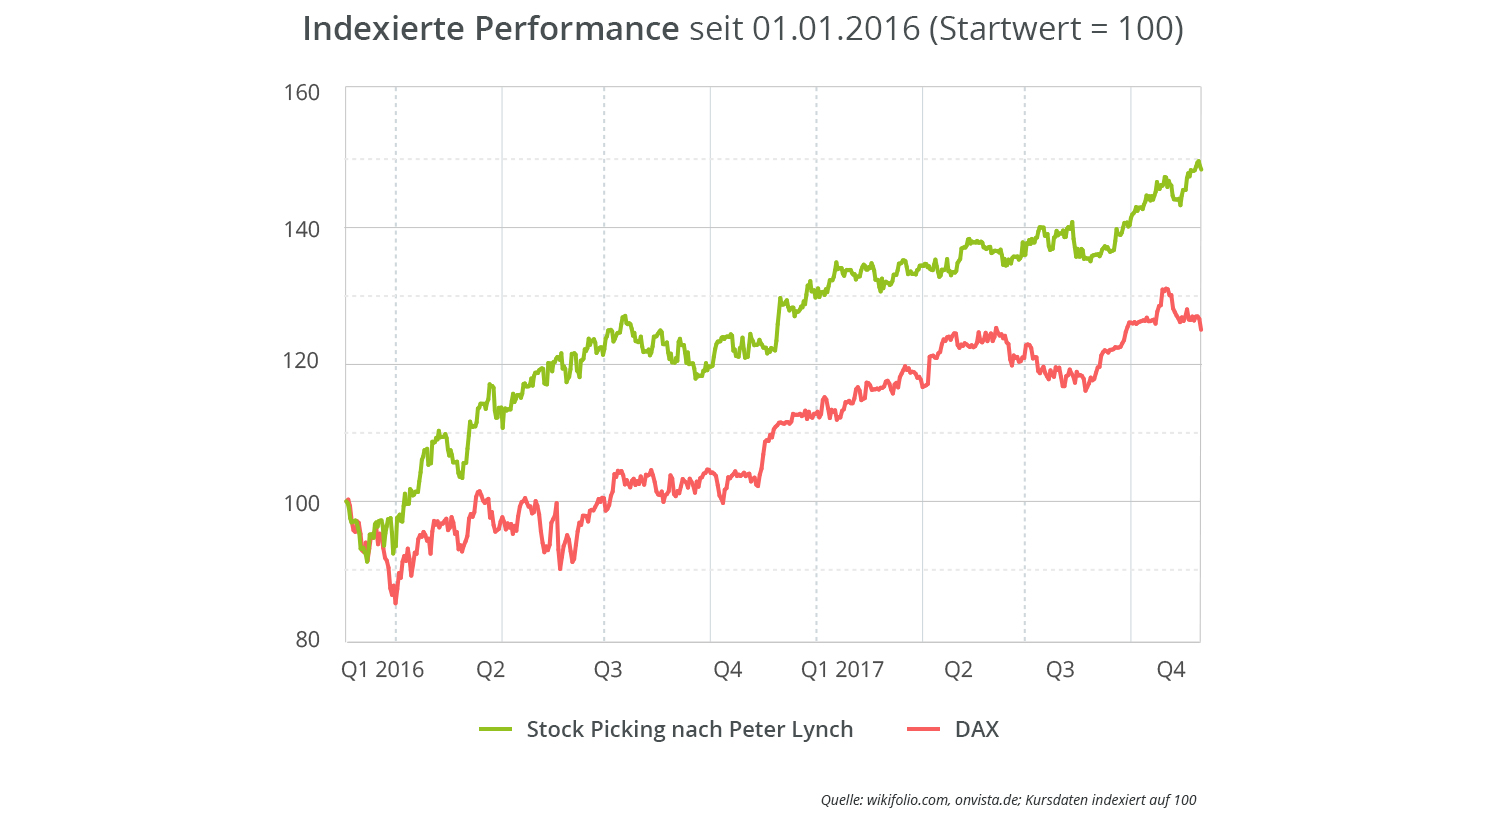 stock-picking-nach-peter-lynch-vs-dax-outperformance